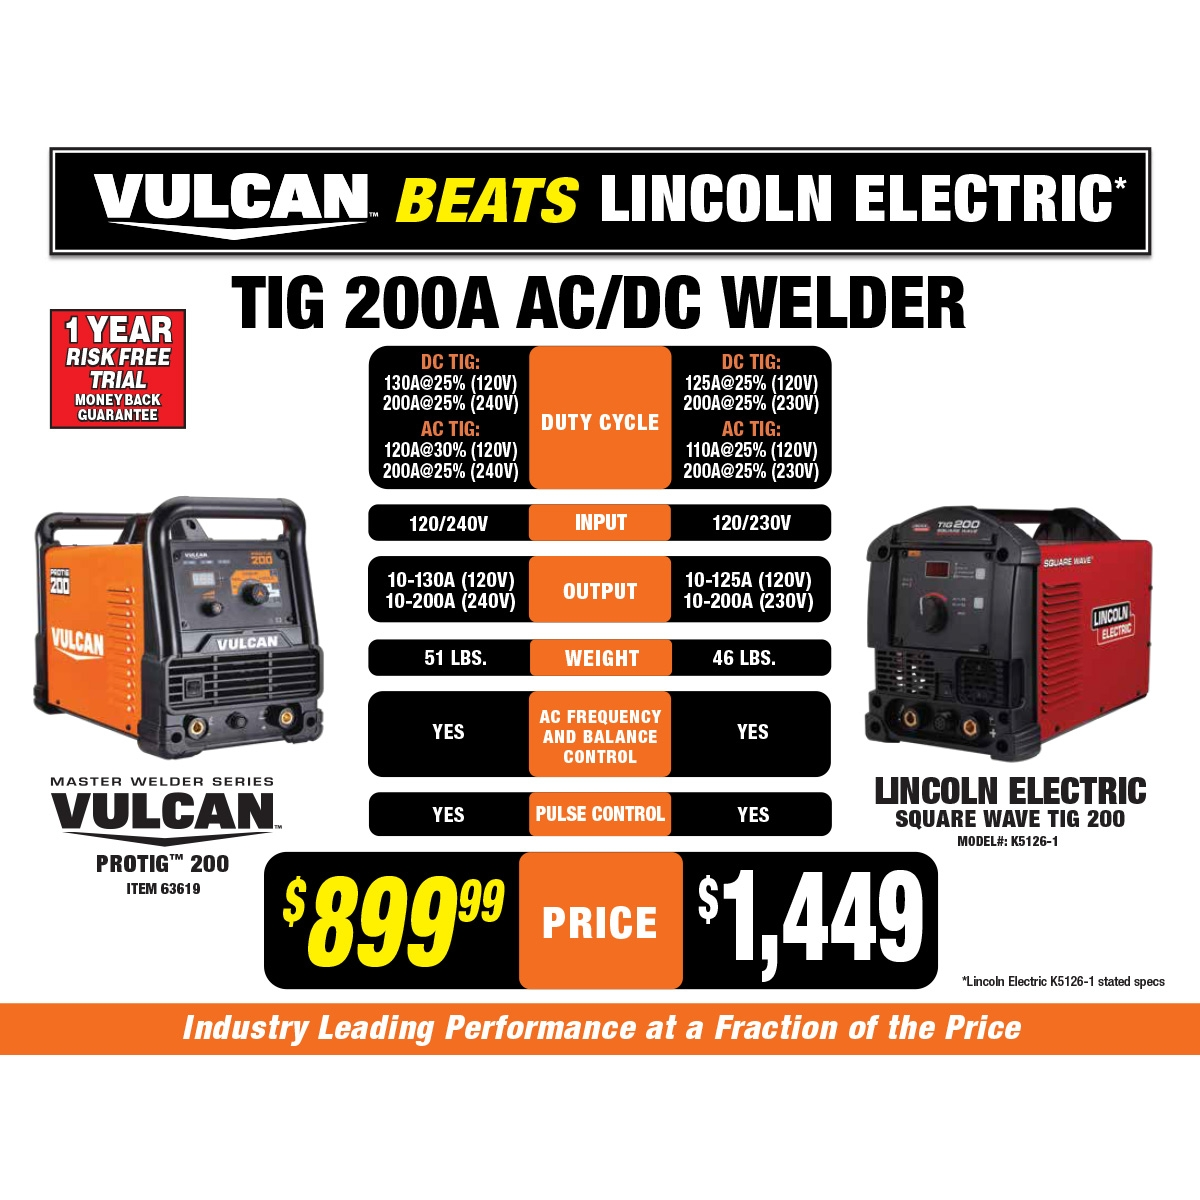 Harbor Freight Tools VULCAN PROTIG 200 Manuals - oukas info